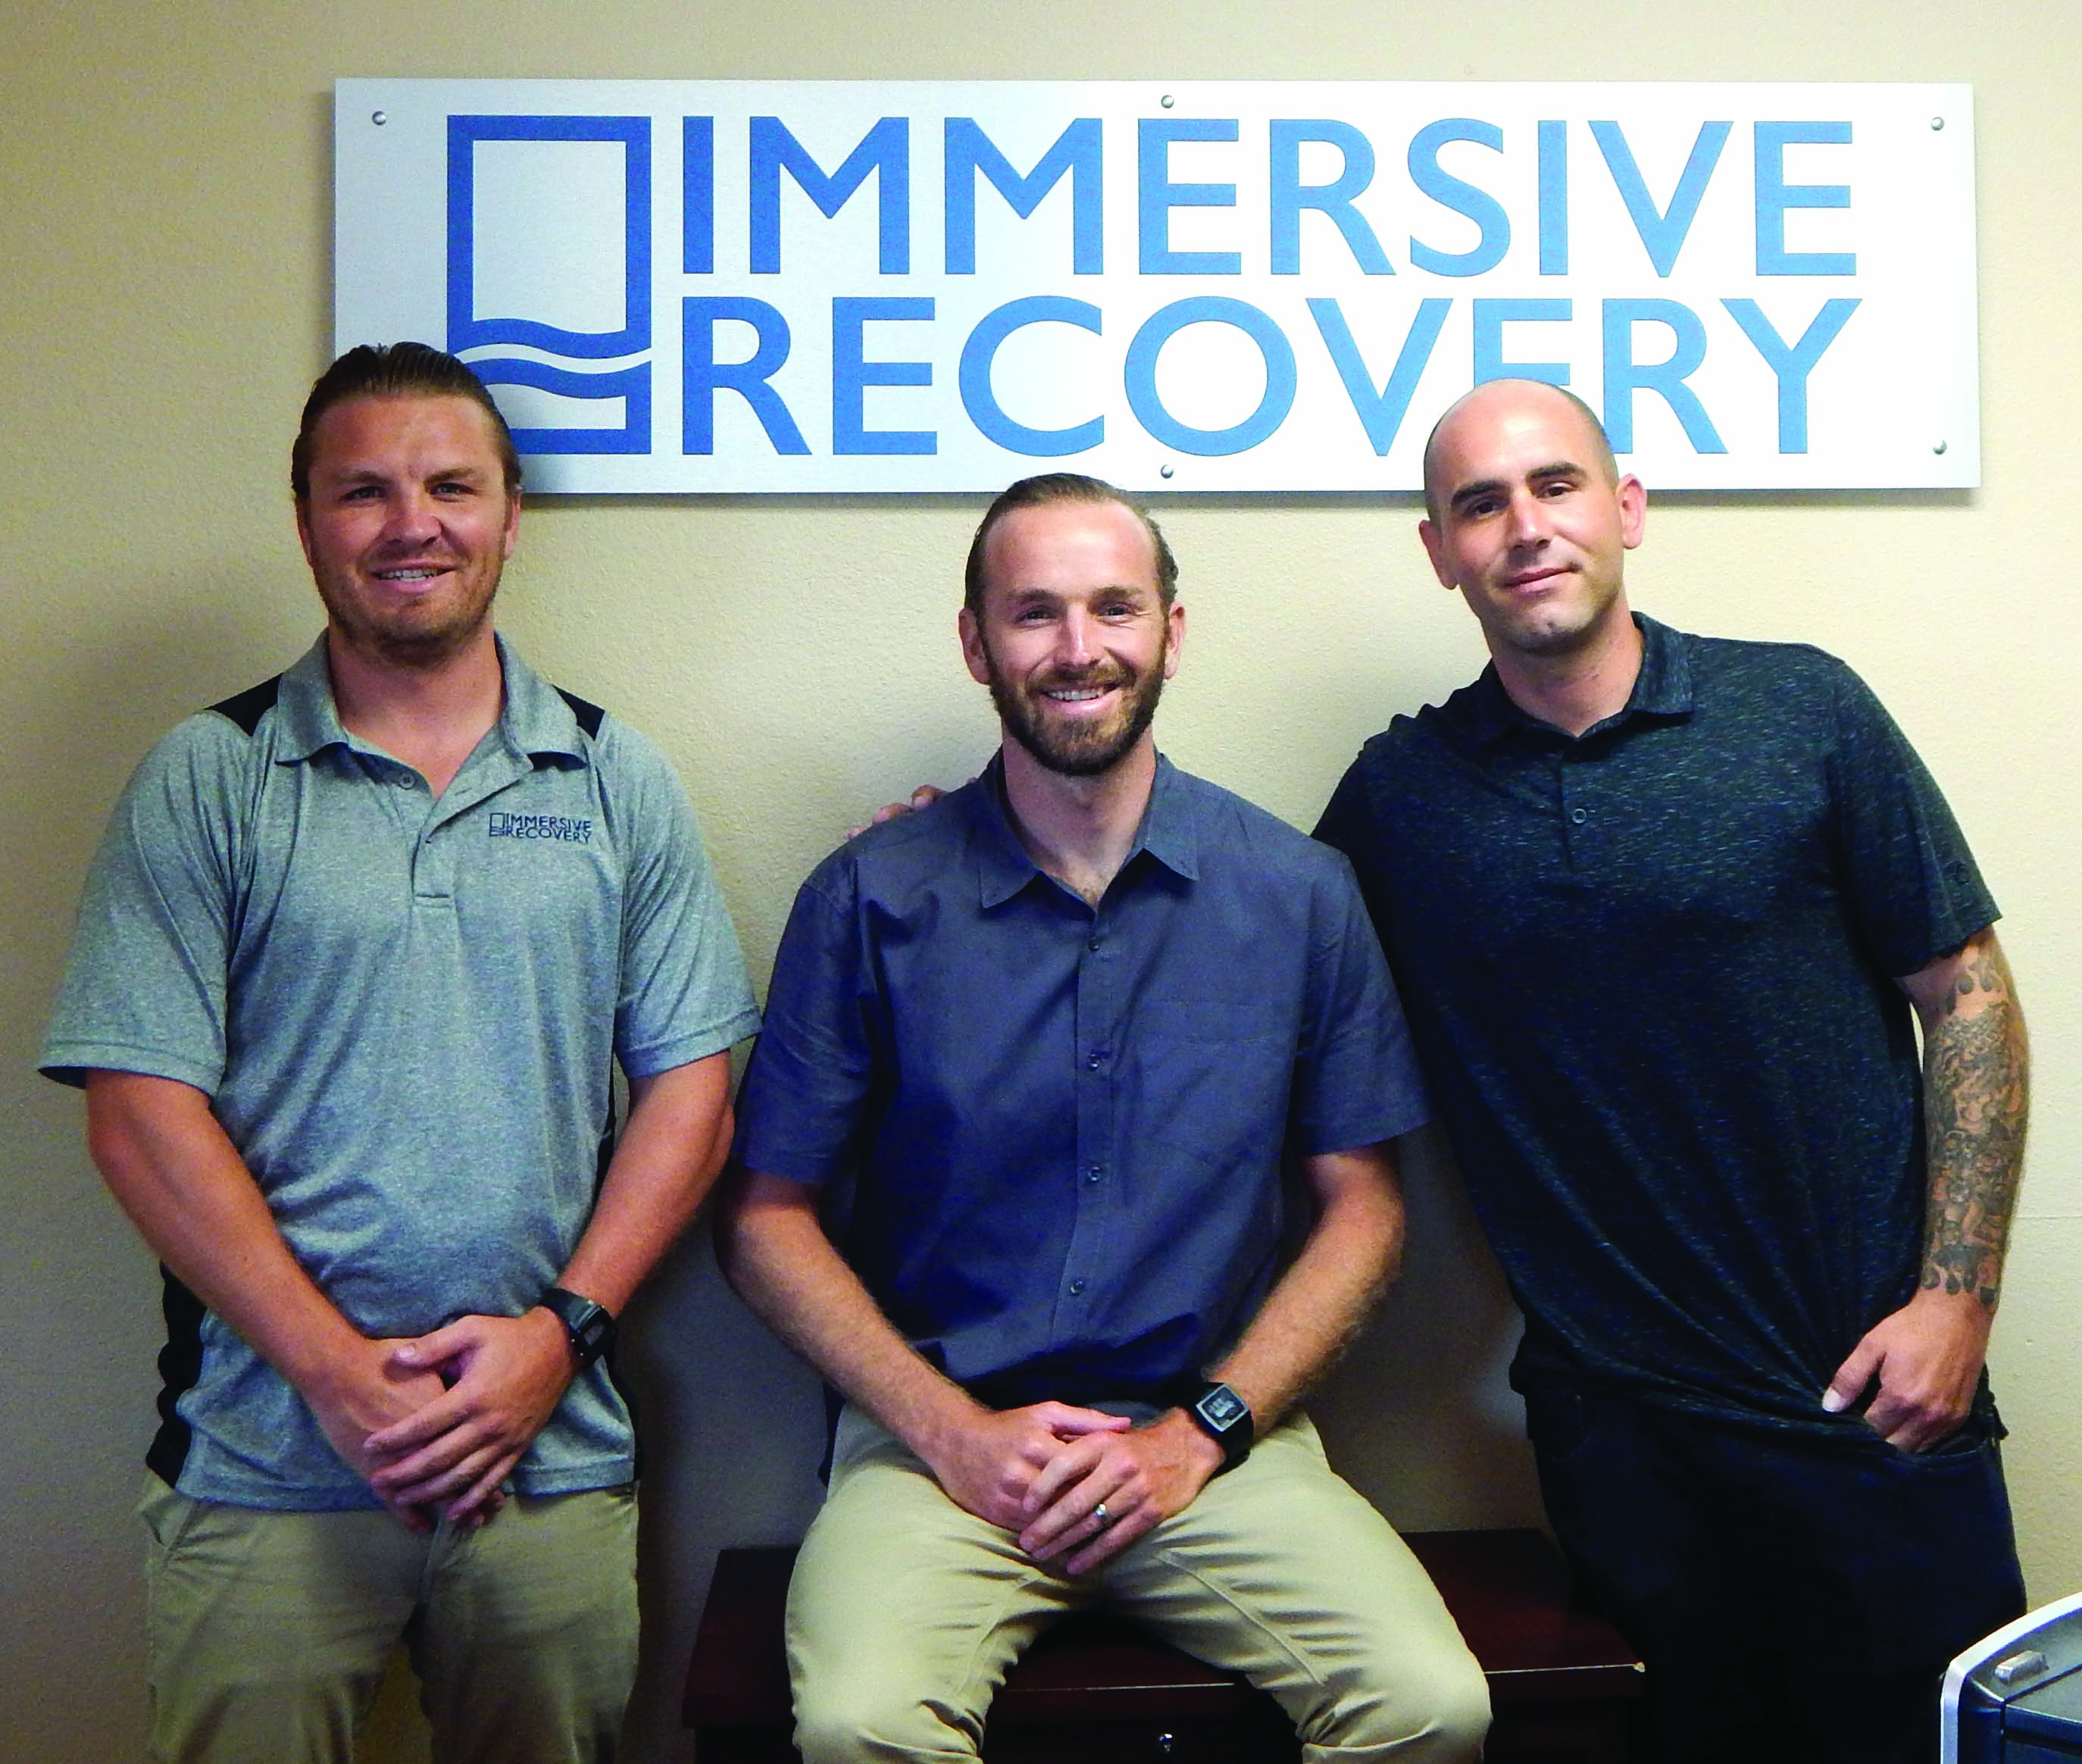 Rehab counseling center offers hope